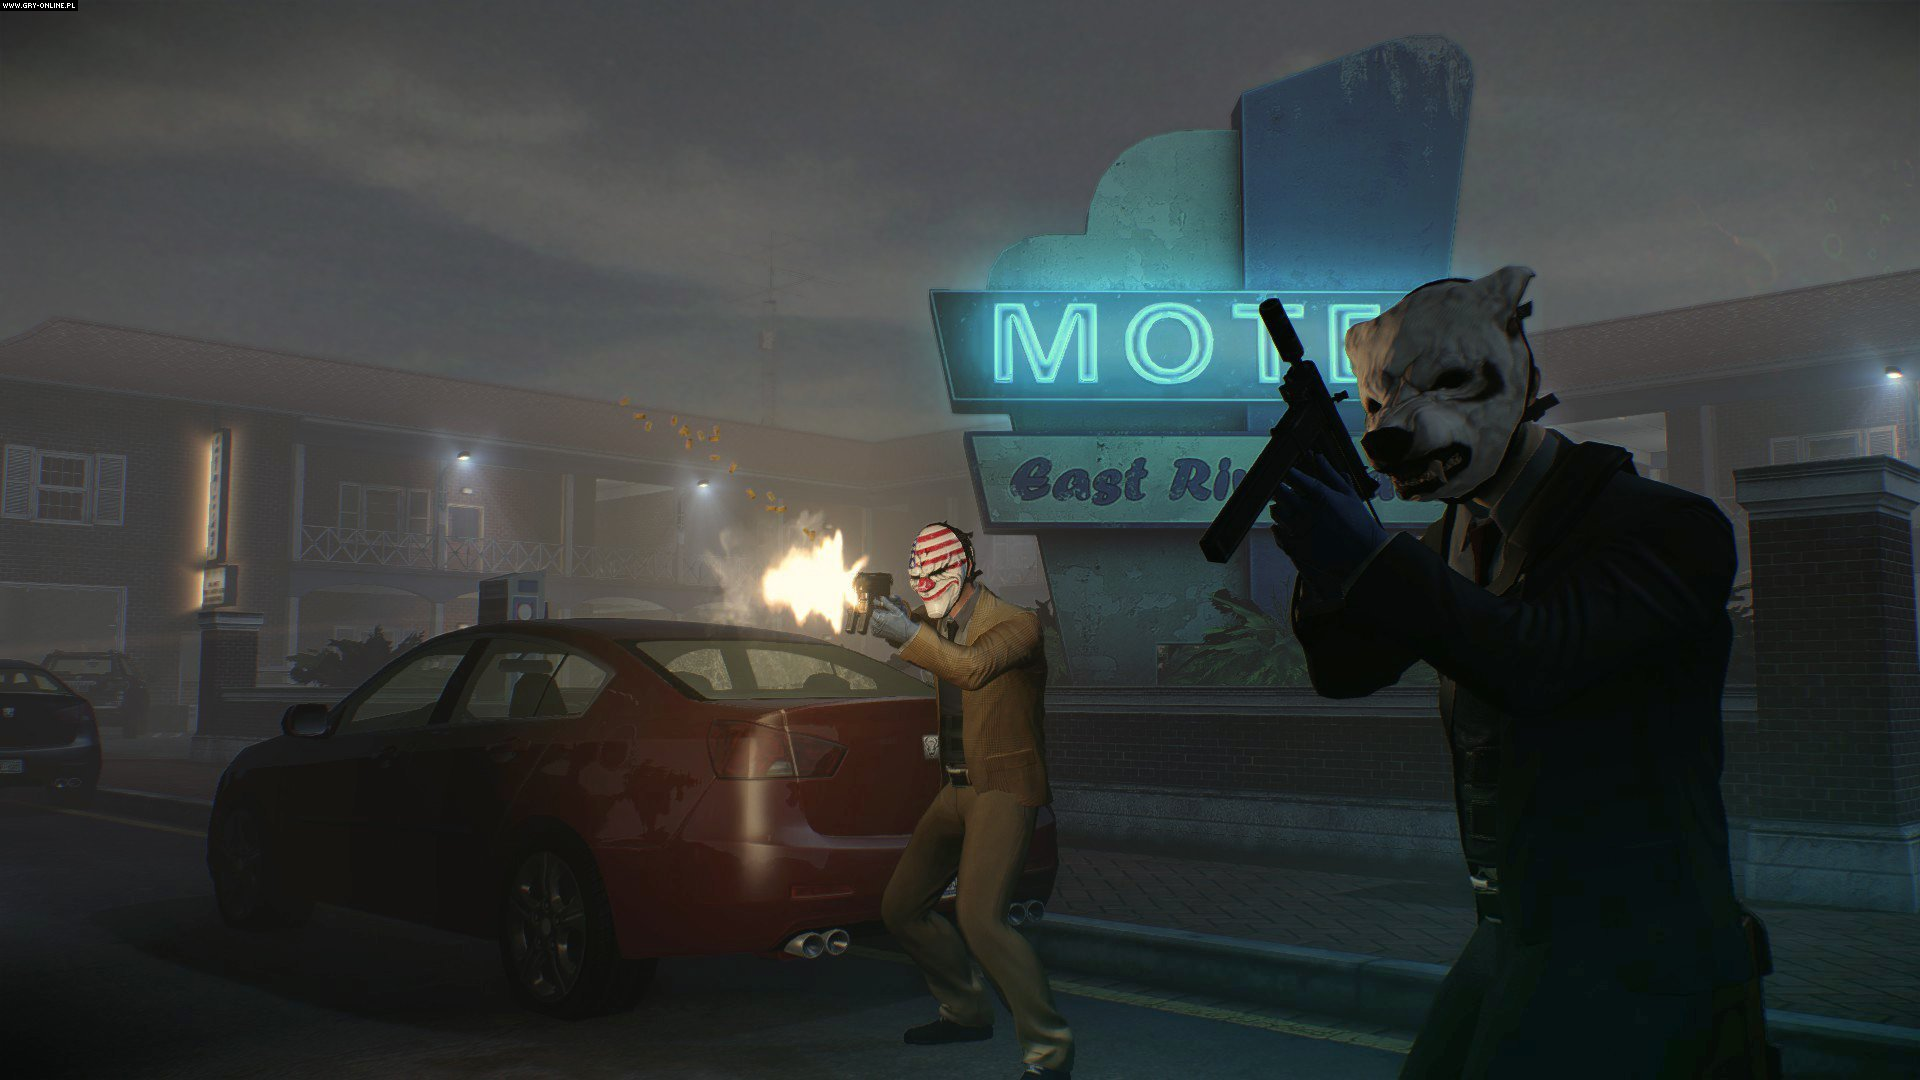 PayDay 2 PC, PS4, XONE Gry Screen 10/114, OVERKILL Software, 505 Games